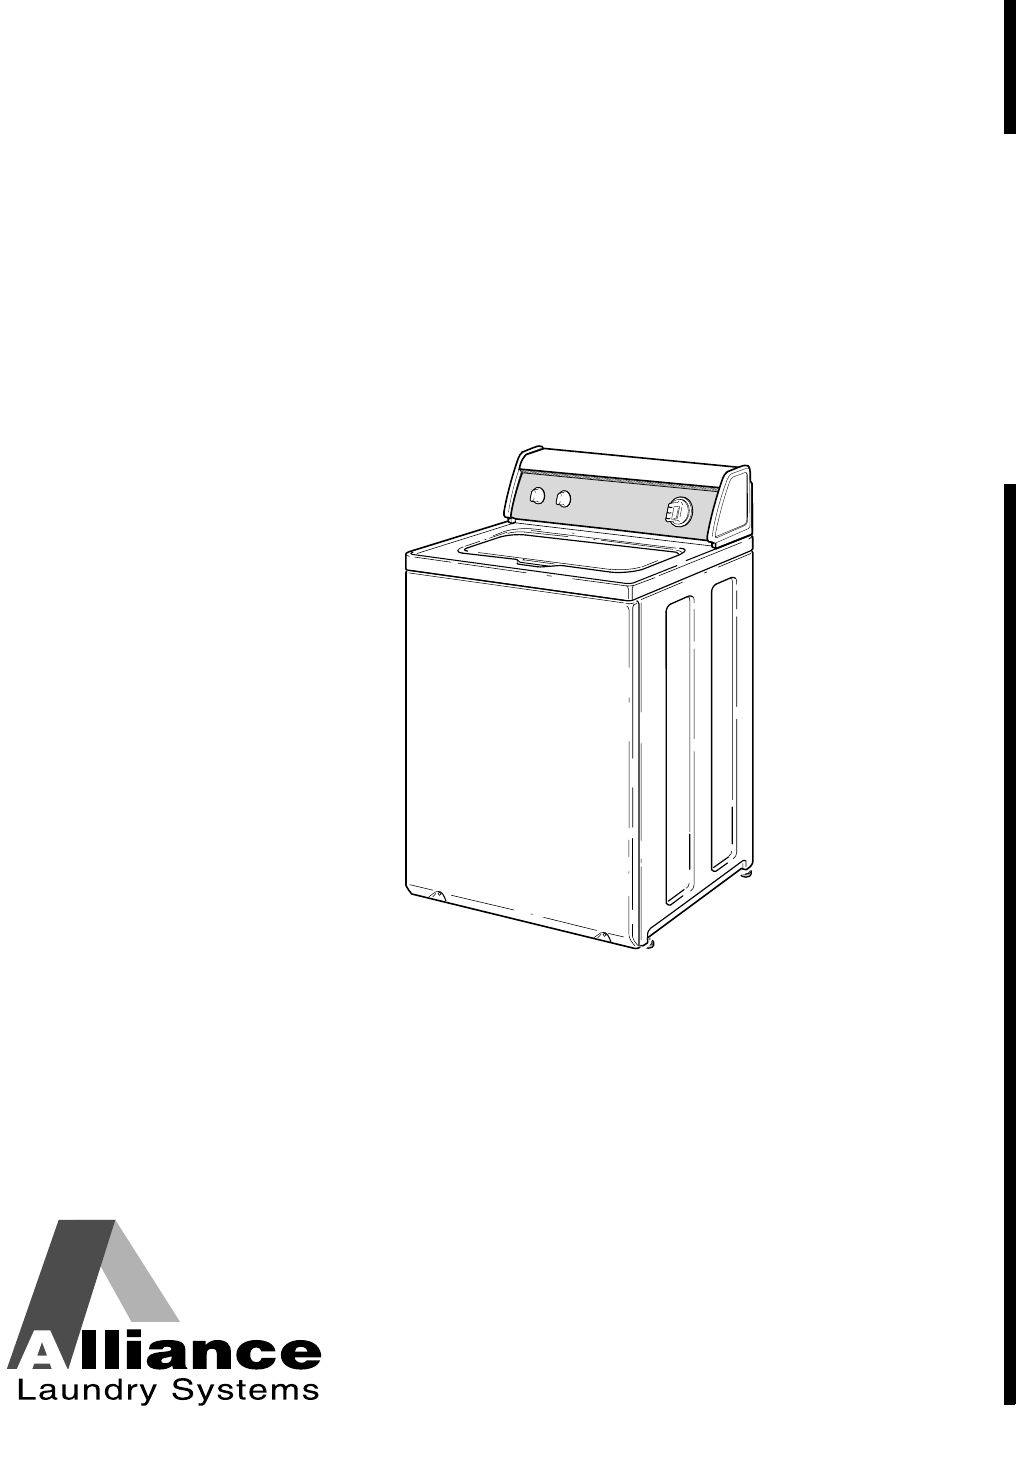 Alliance Laundry Systems Washer W001C User Guide